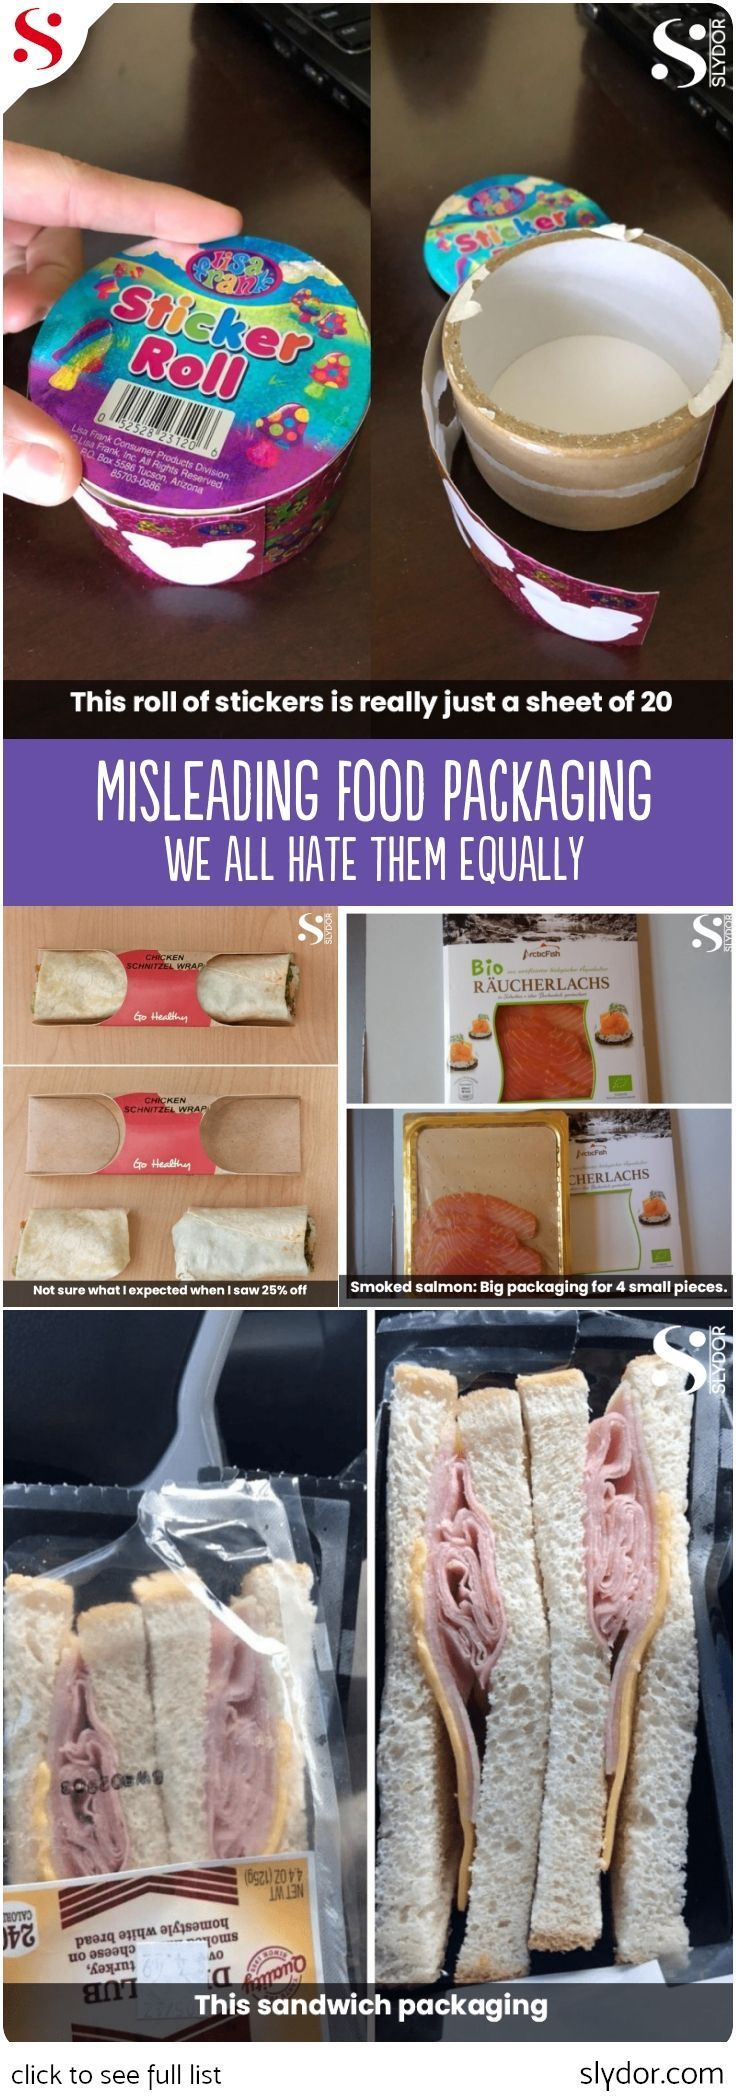 Misleading Food Packaging This Is Why I Have Trust Issues